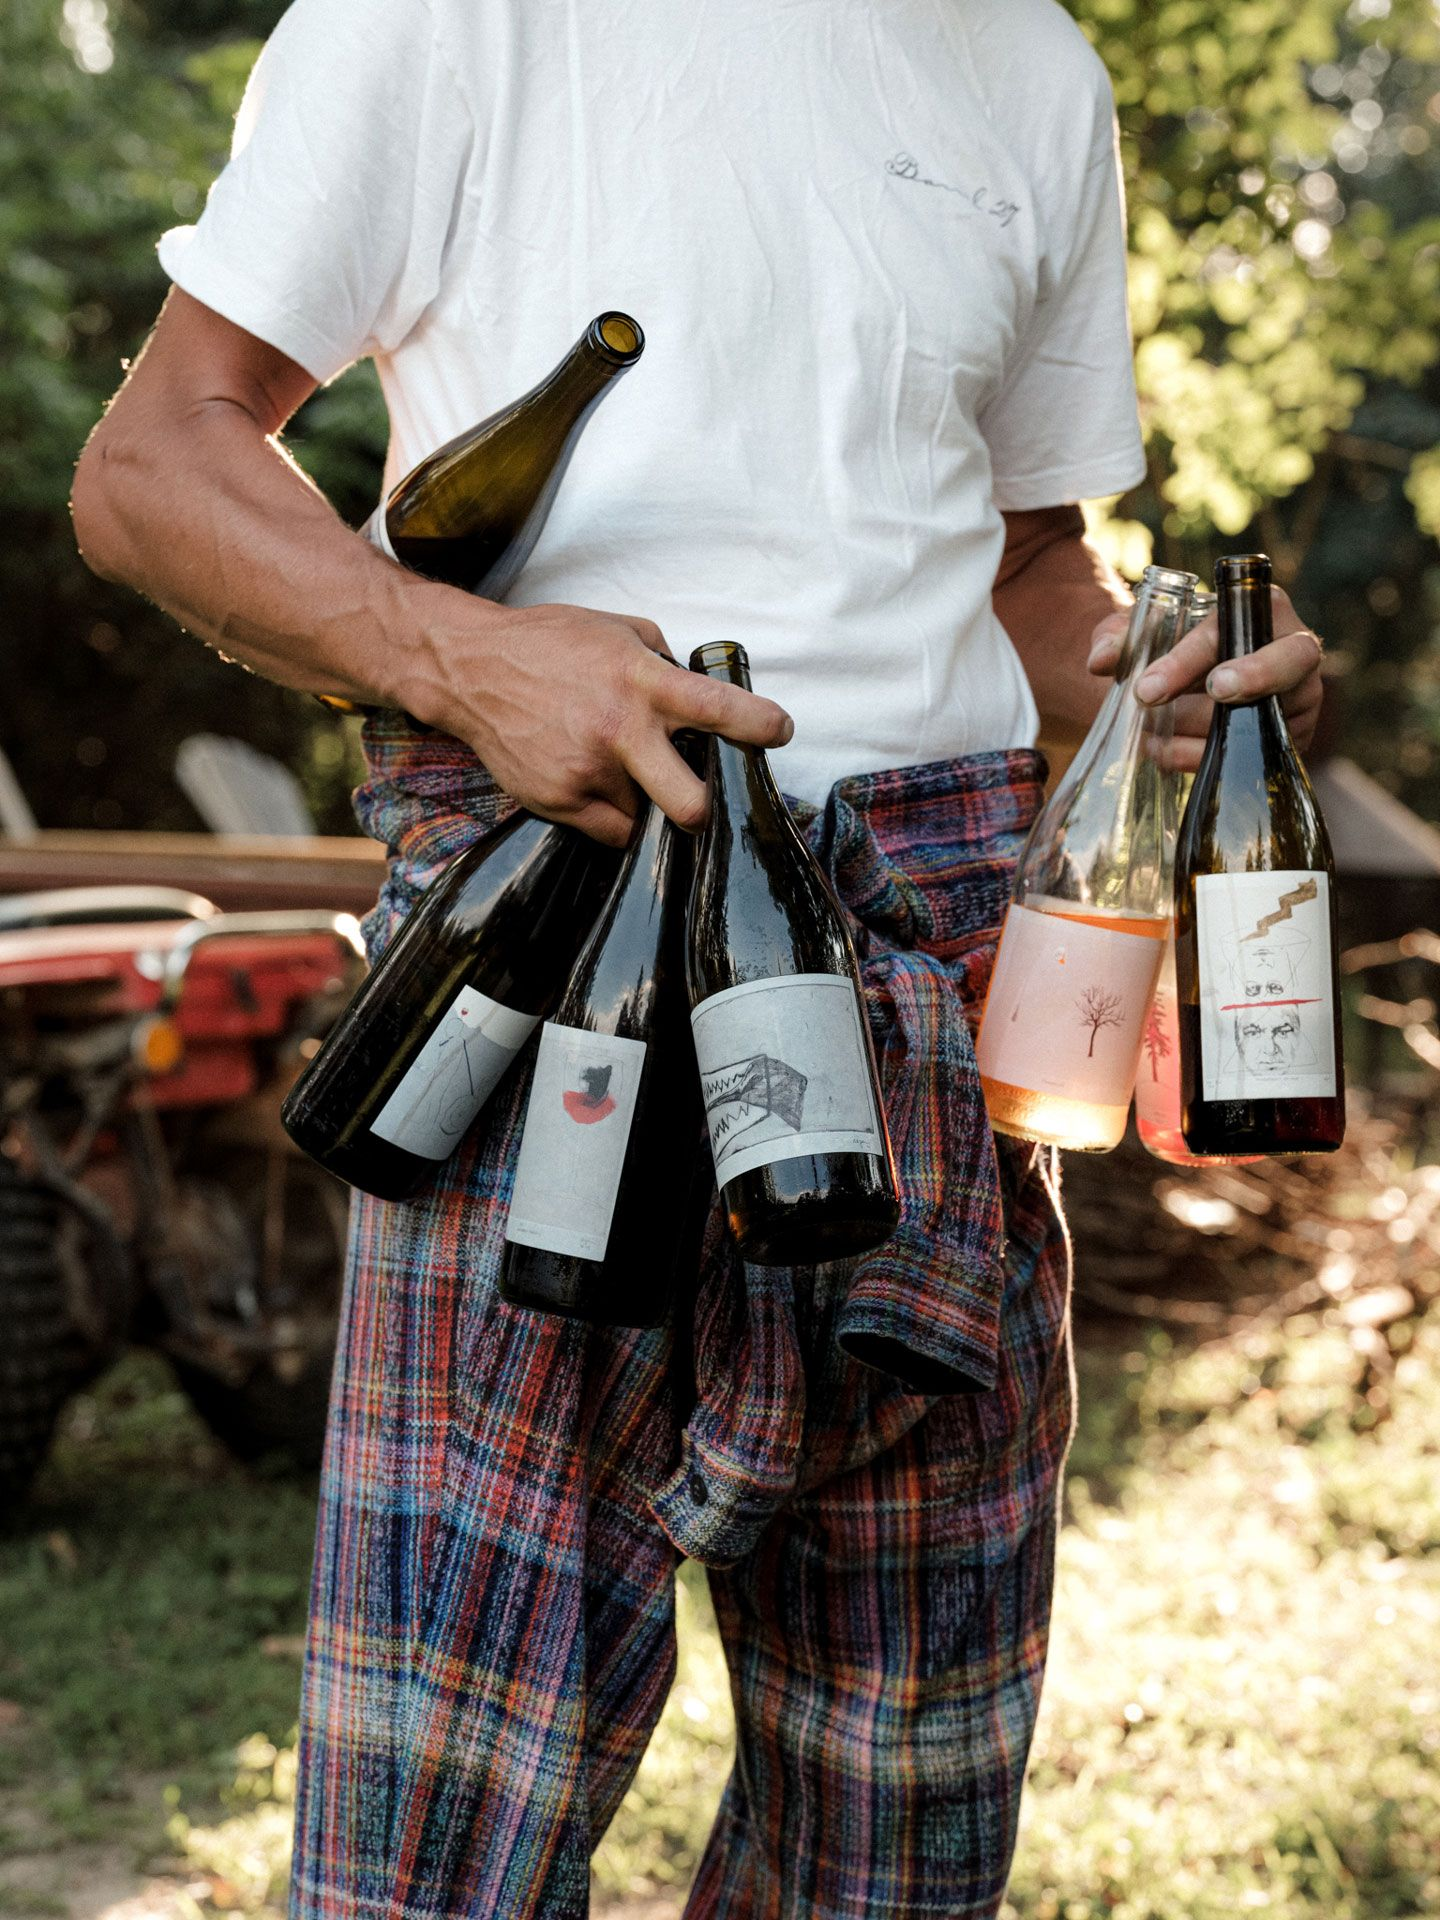 winemaker from Pinard & Filles holding seven bottles of wine in his arms and hands by Alexi Hobbs for Larose Paris